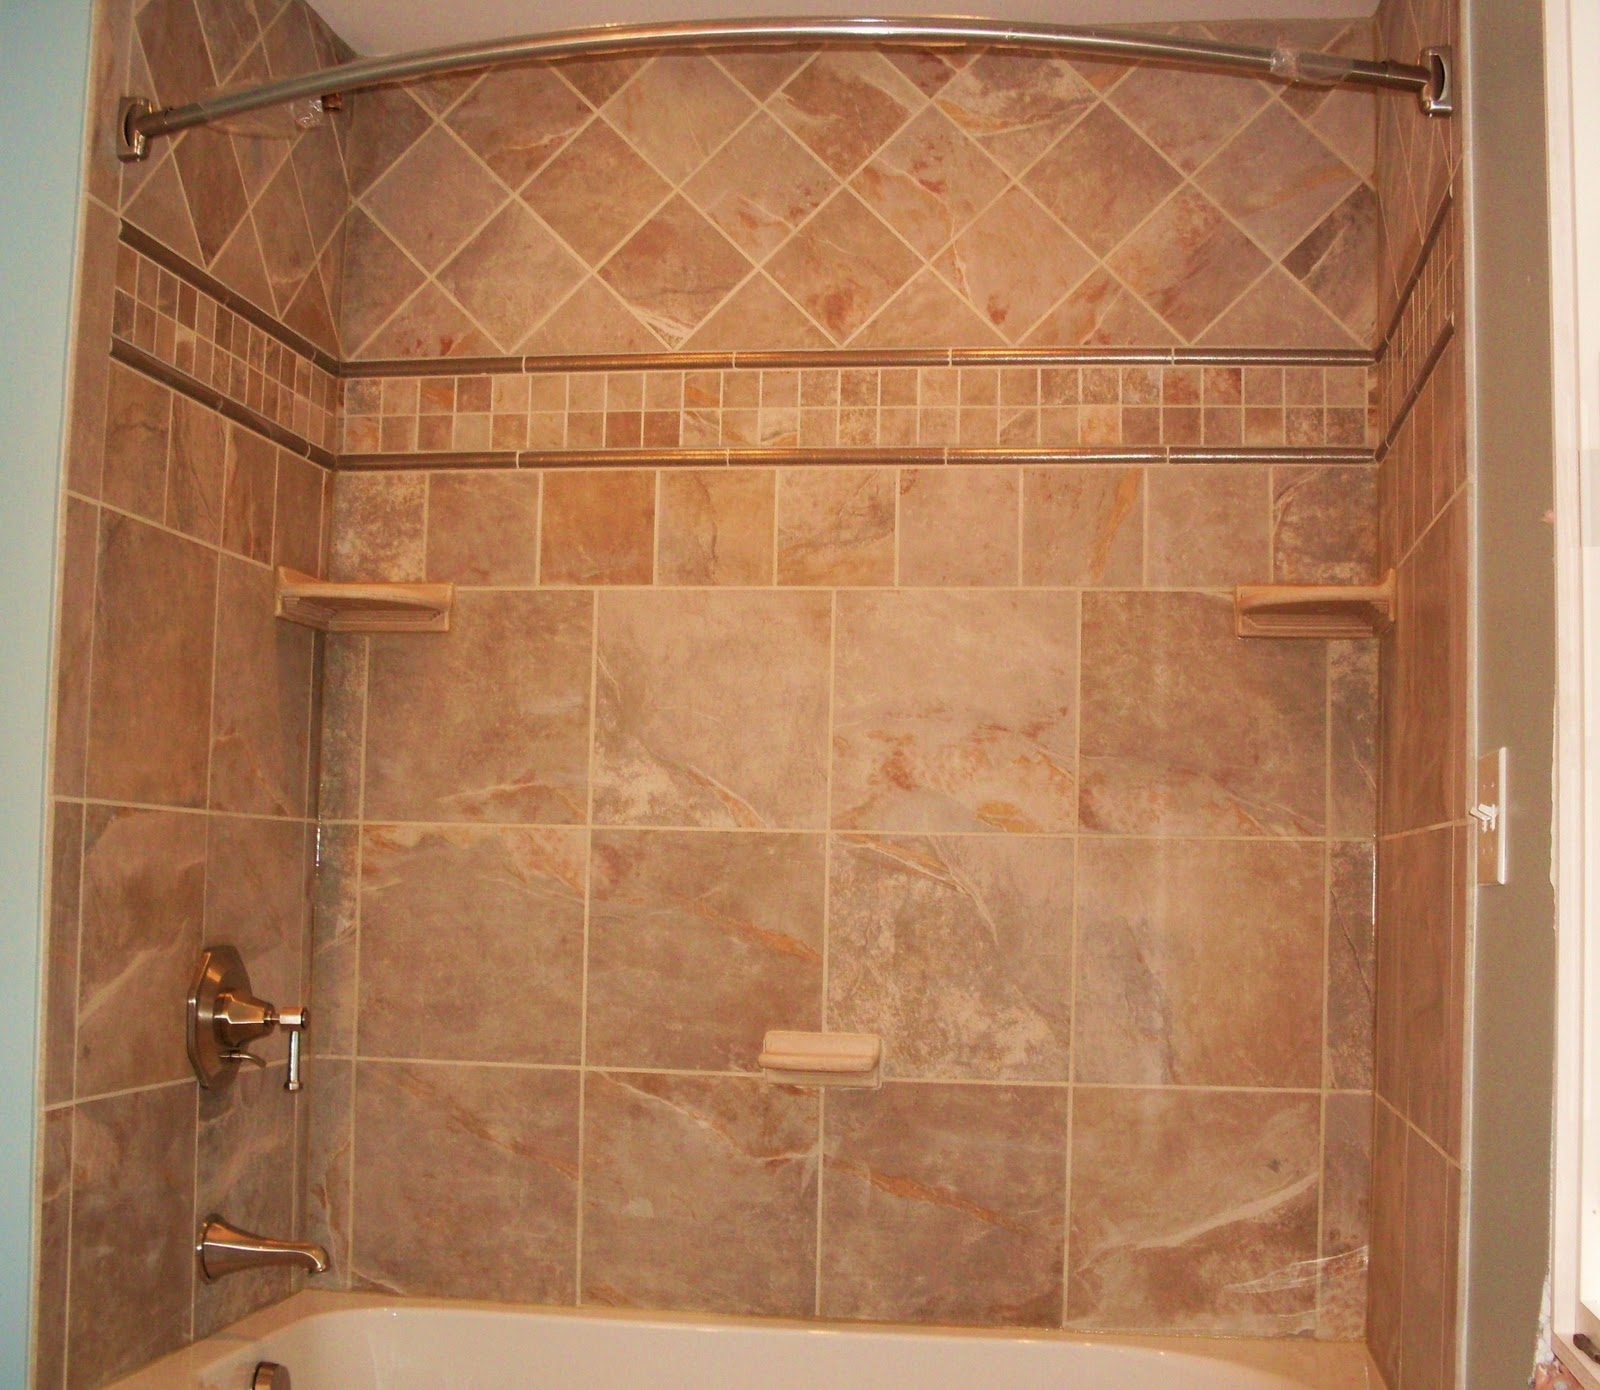 Remodel ideas on pinterest tile tub surround tub surround and tile - Tile shower surround ideas ...